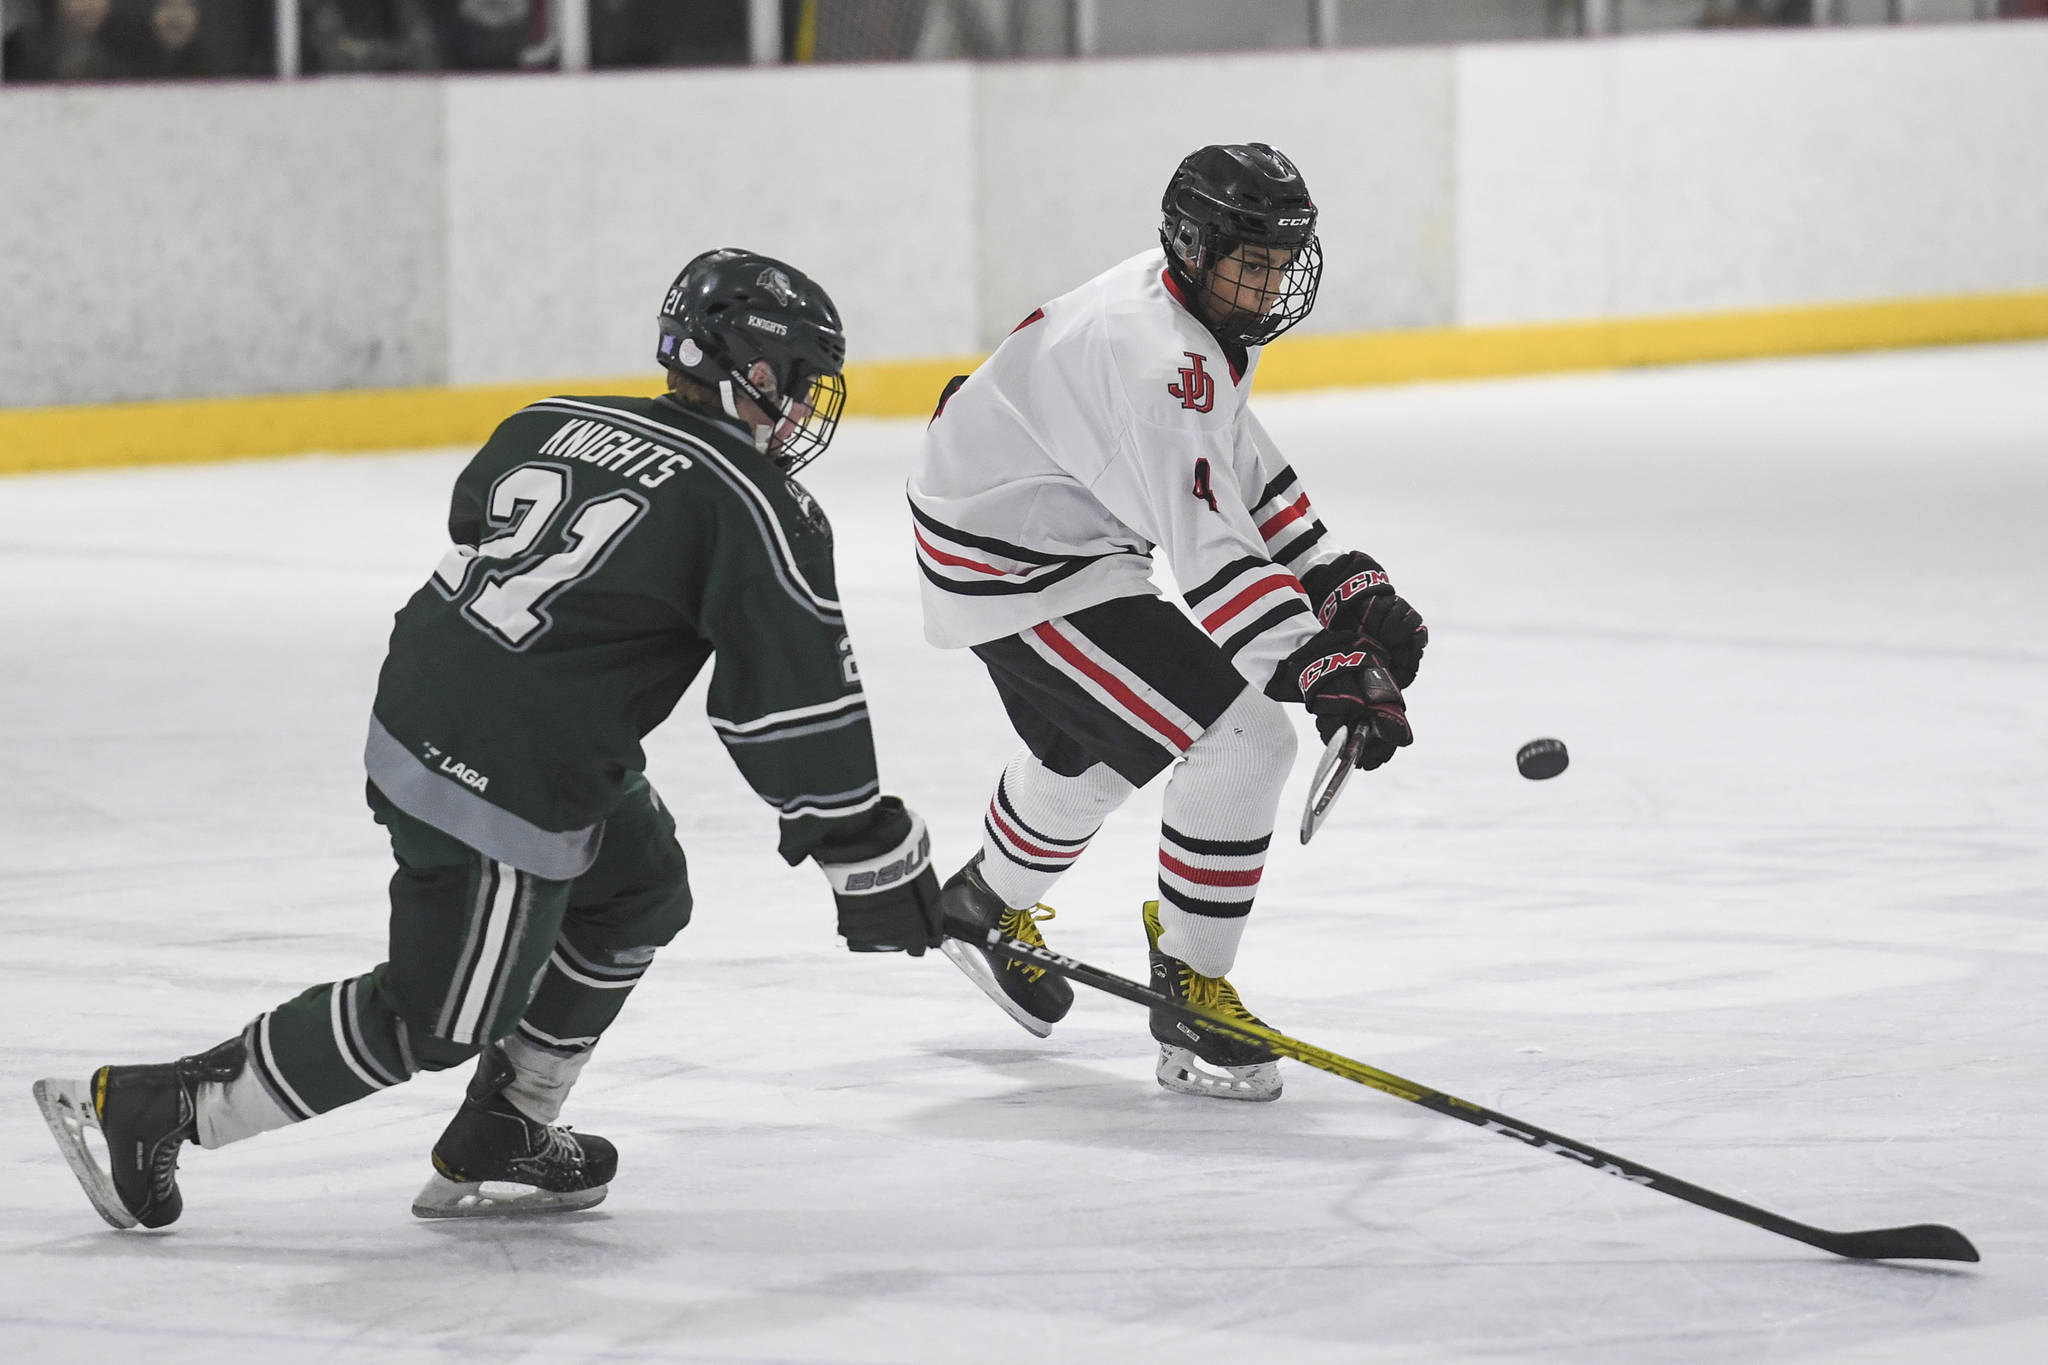 Juneau-Douglas' Andre Peirovi, right, flicks the puck away from Colony's Jacob Ross at Treadwell Arena on Friday, Nov. 22, 2019. (Michael Penn | Juneau Empire)